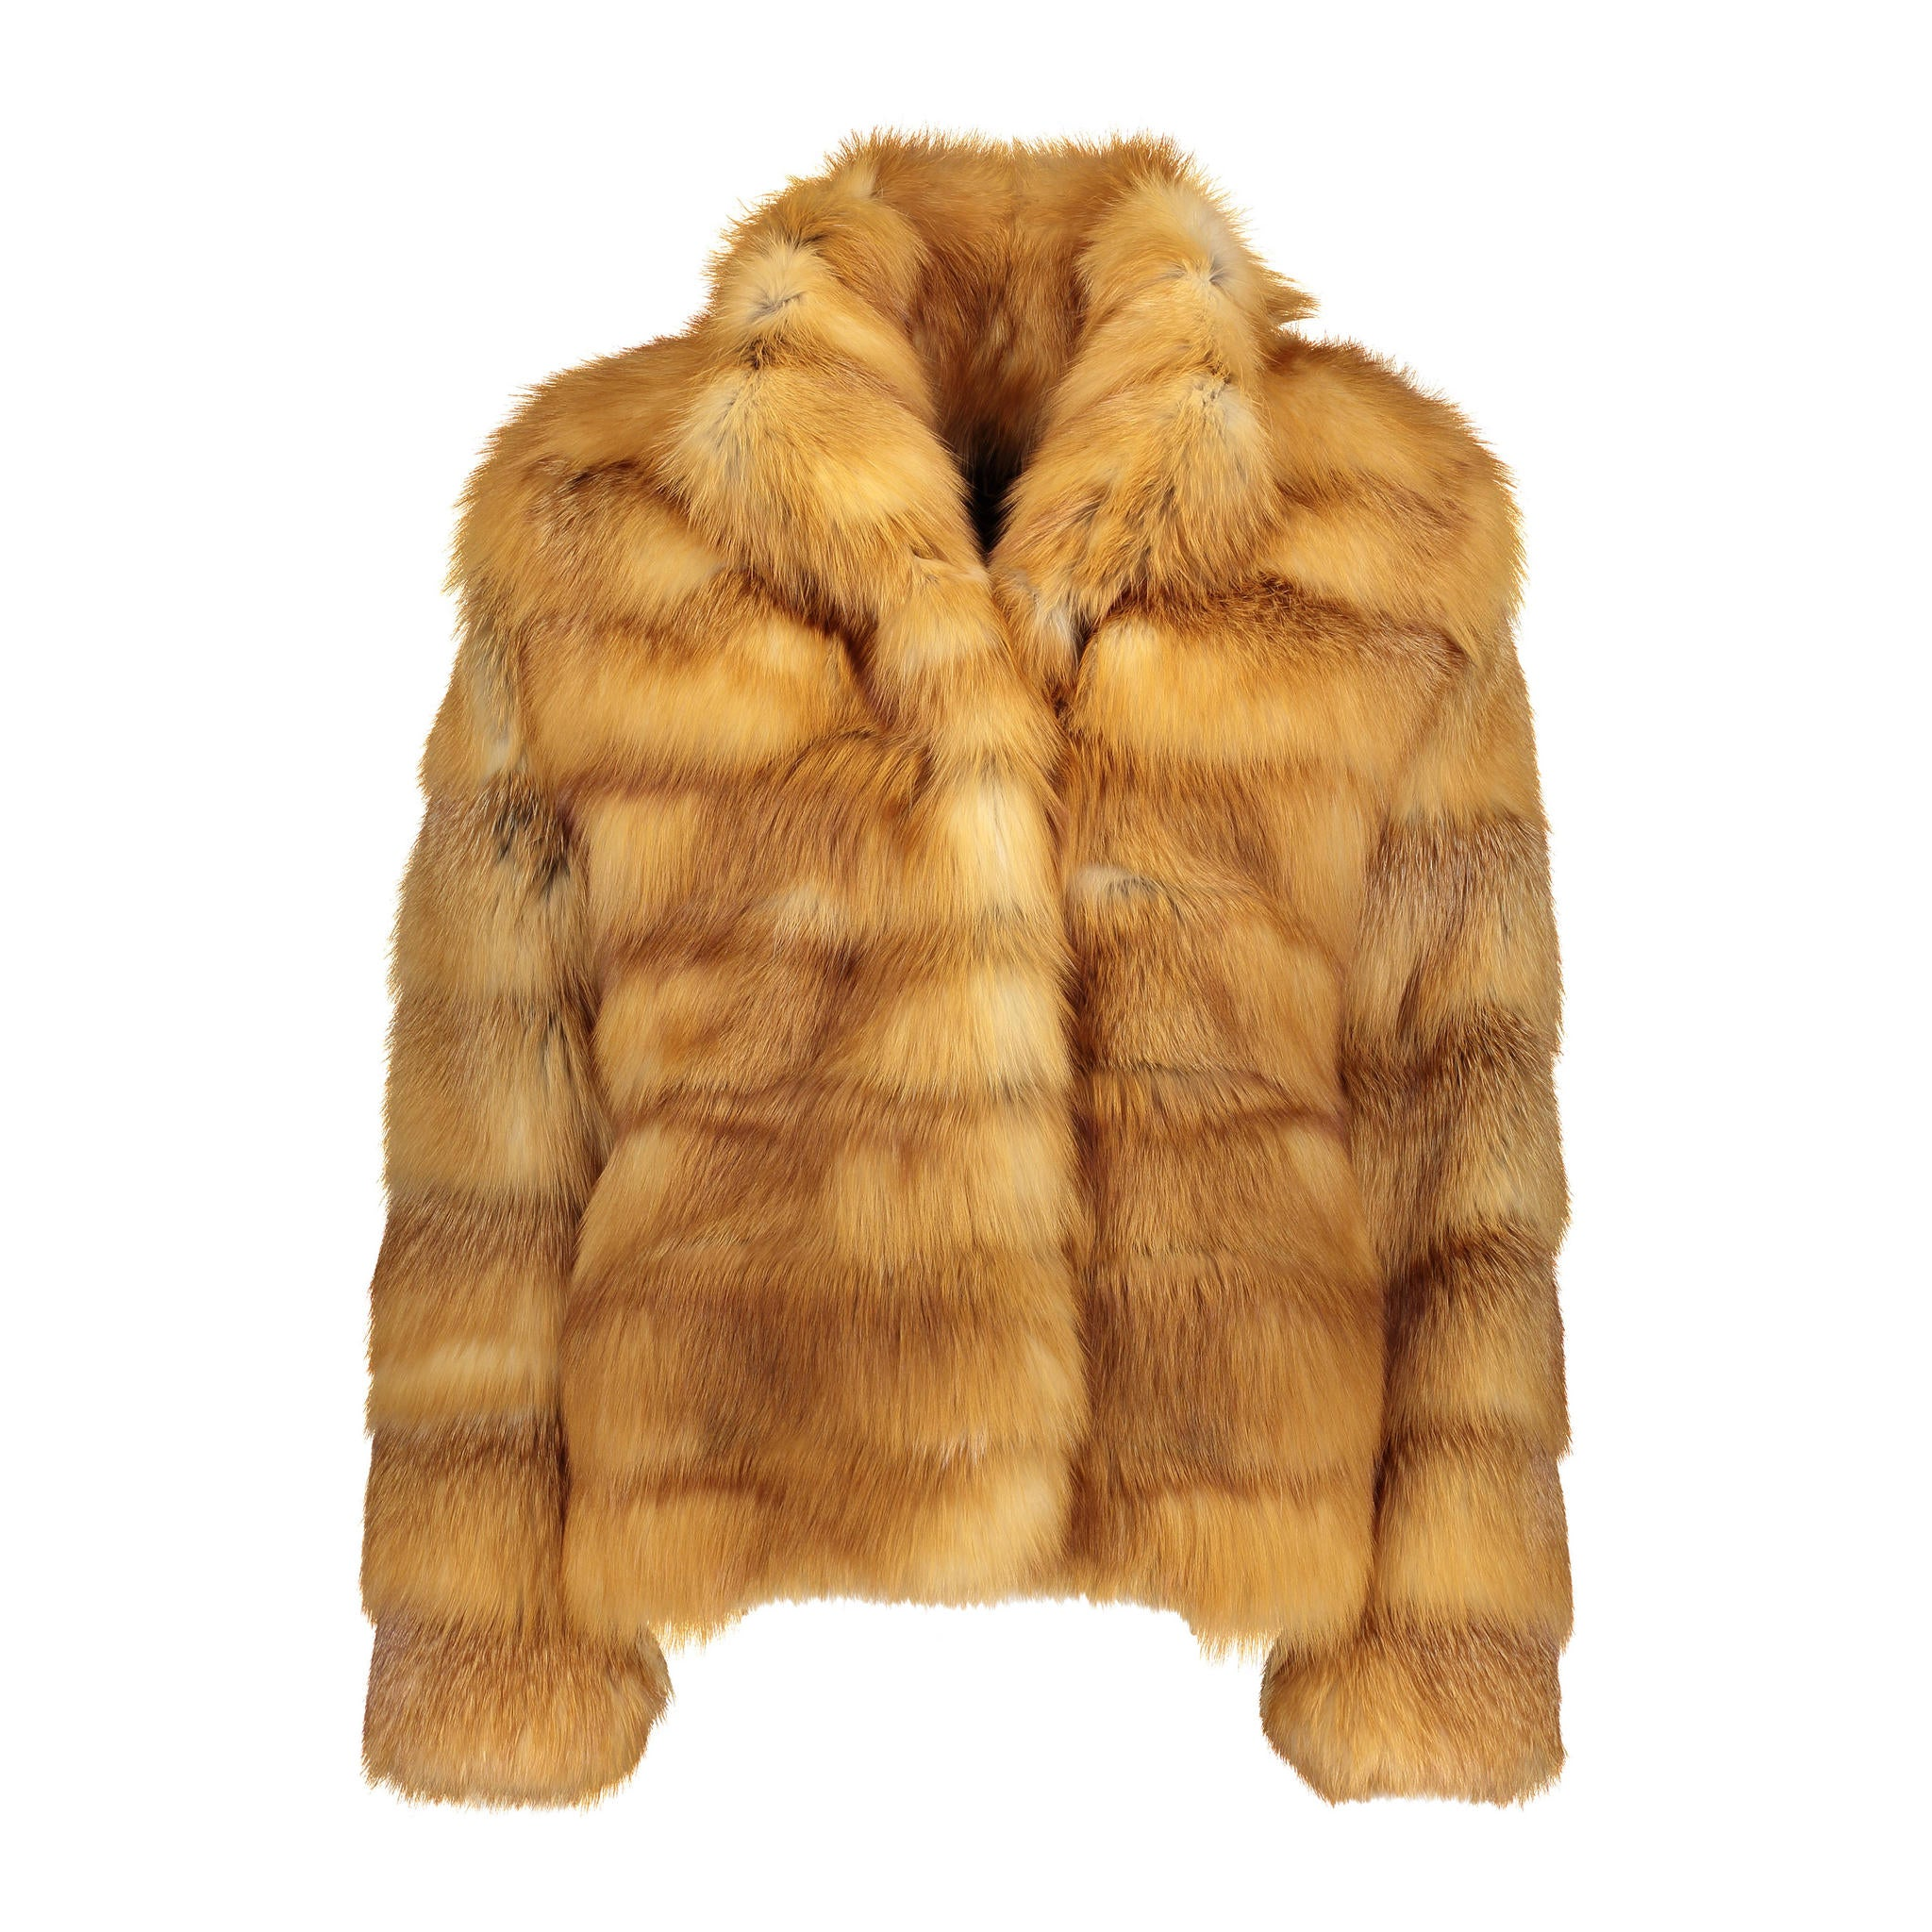 Jane Canadian Red Fox Jacket